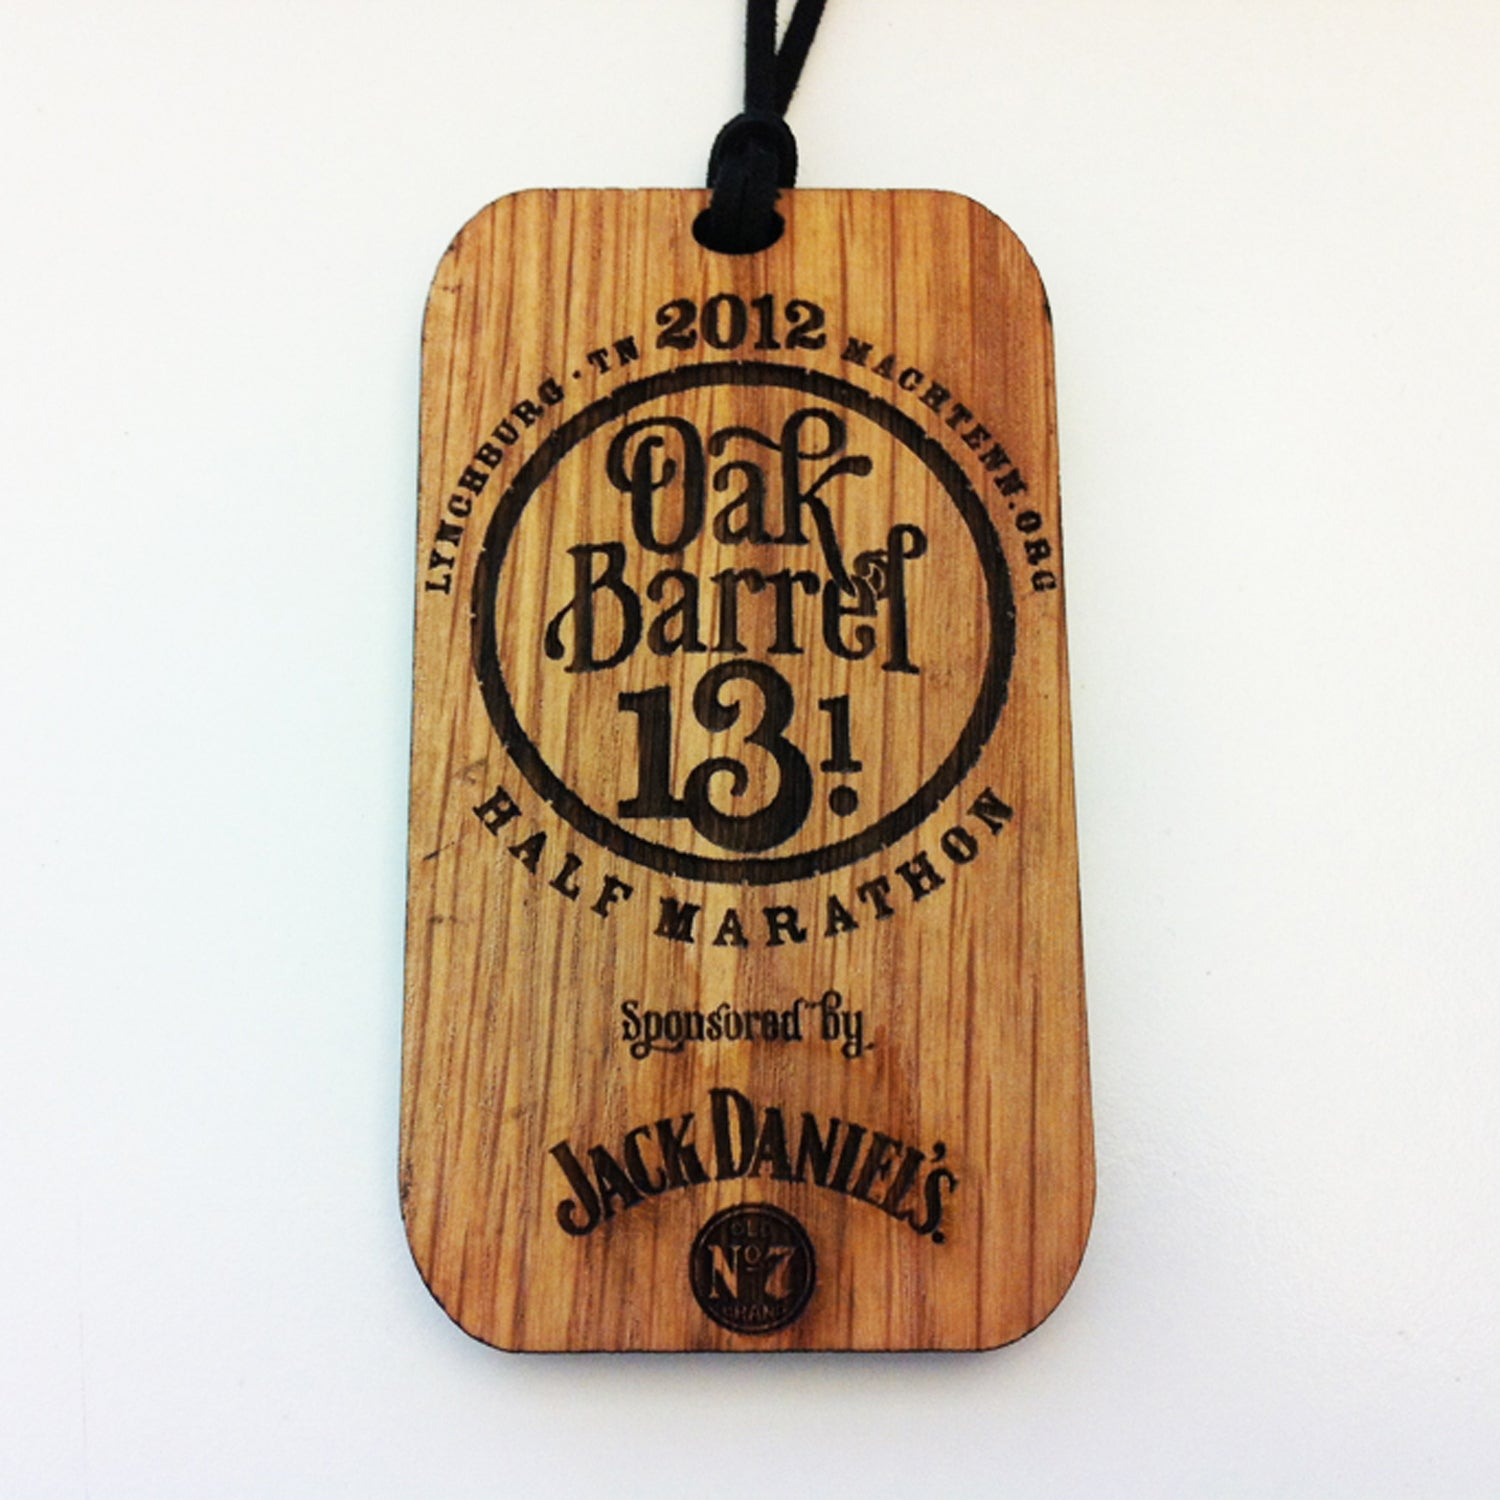 Solera: With so many medals made of its homonym, it's refreshing to see one made of wood. Sponsored by Jack Daniels, this event gives each finisher a medal that looks as if it were dipped and aged in whiskey. Burnt edges and a leather strap give this memento a lot of Southern charm and character. In keeping with the theme, age group winners received a wedge of a whiskey barrel.